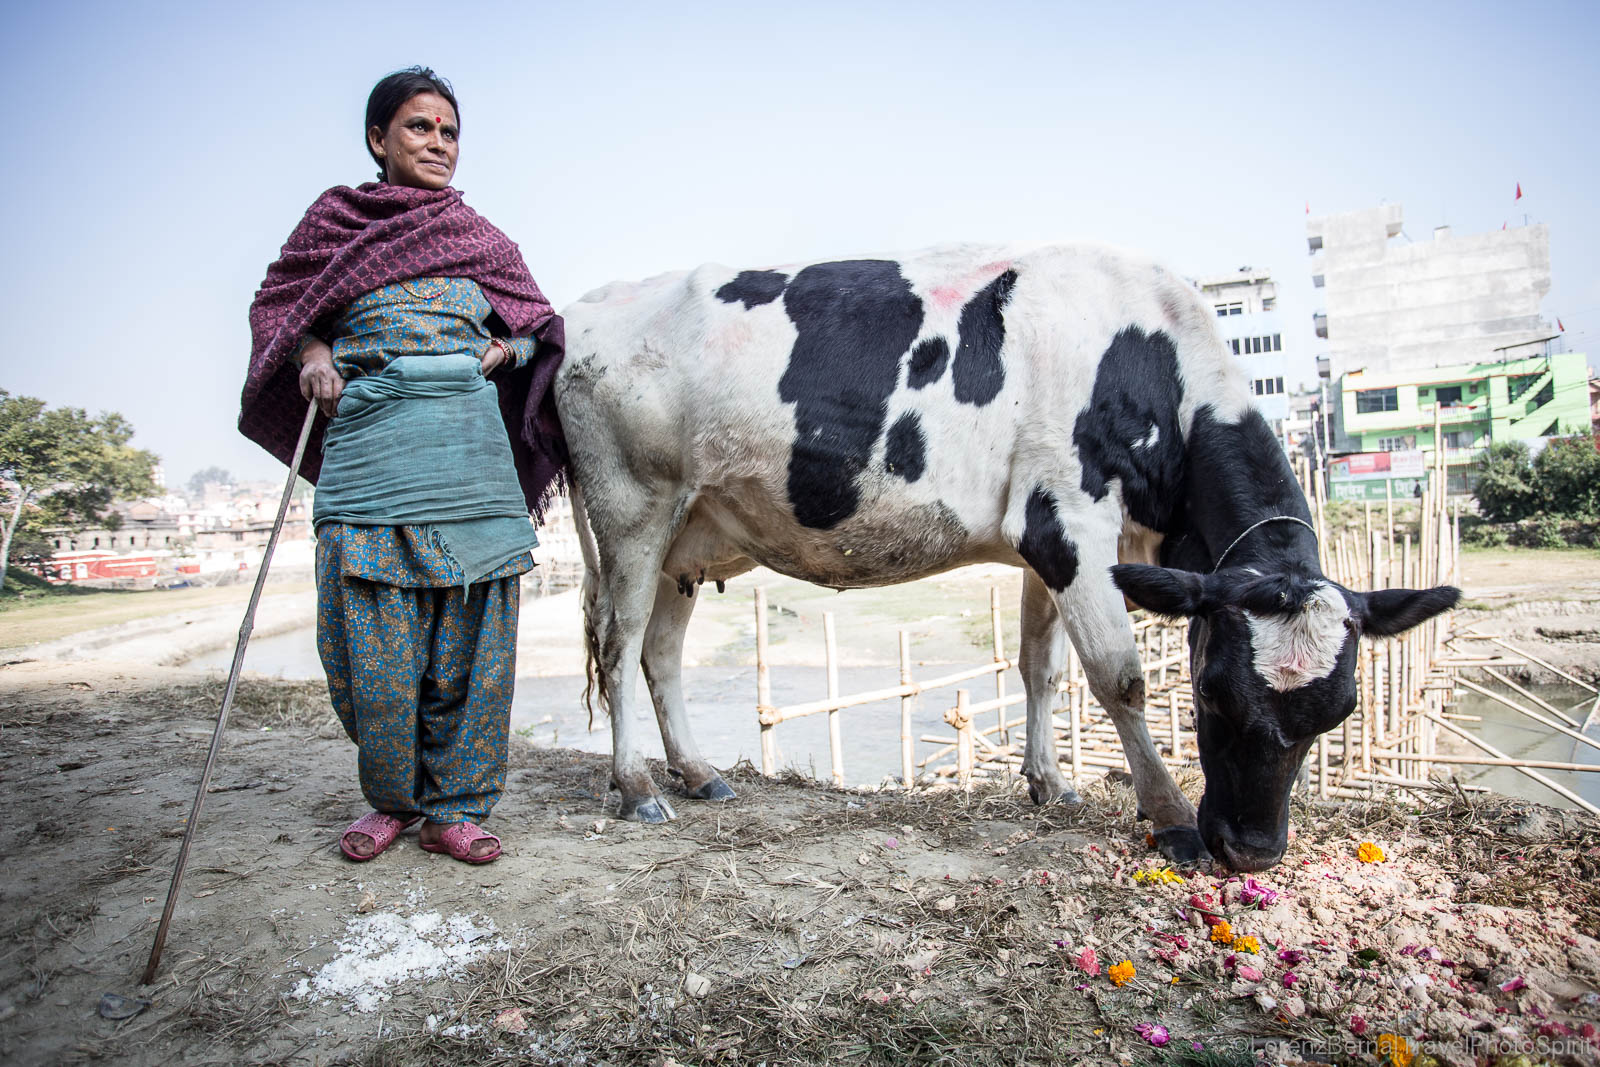 Nepali woman with her cow on a feeding walk, in Pokhara.